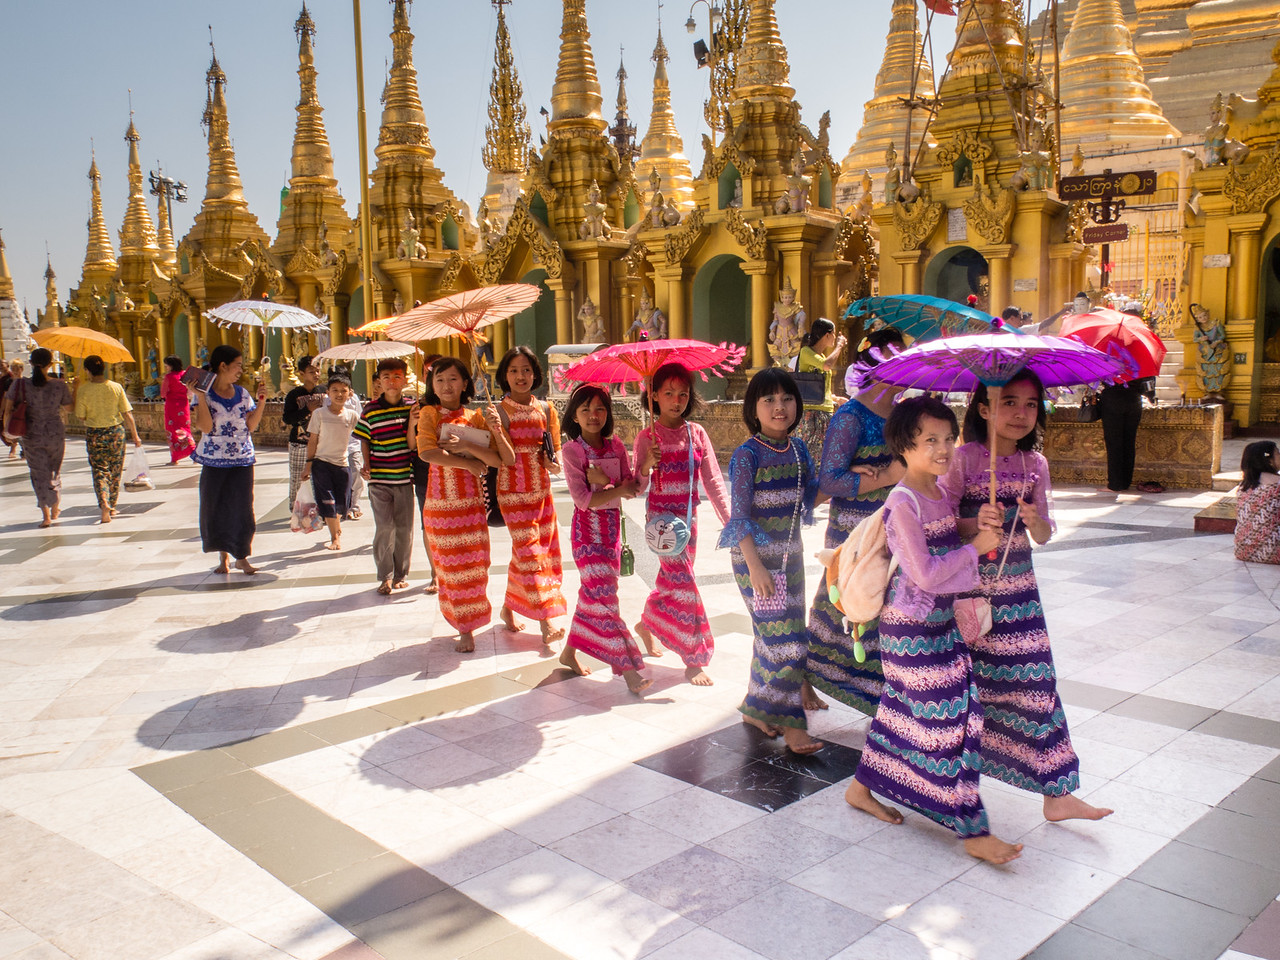 Devotees With Bright Umbrellas Circumambulating Shwedagon Pagoda